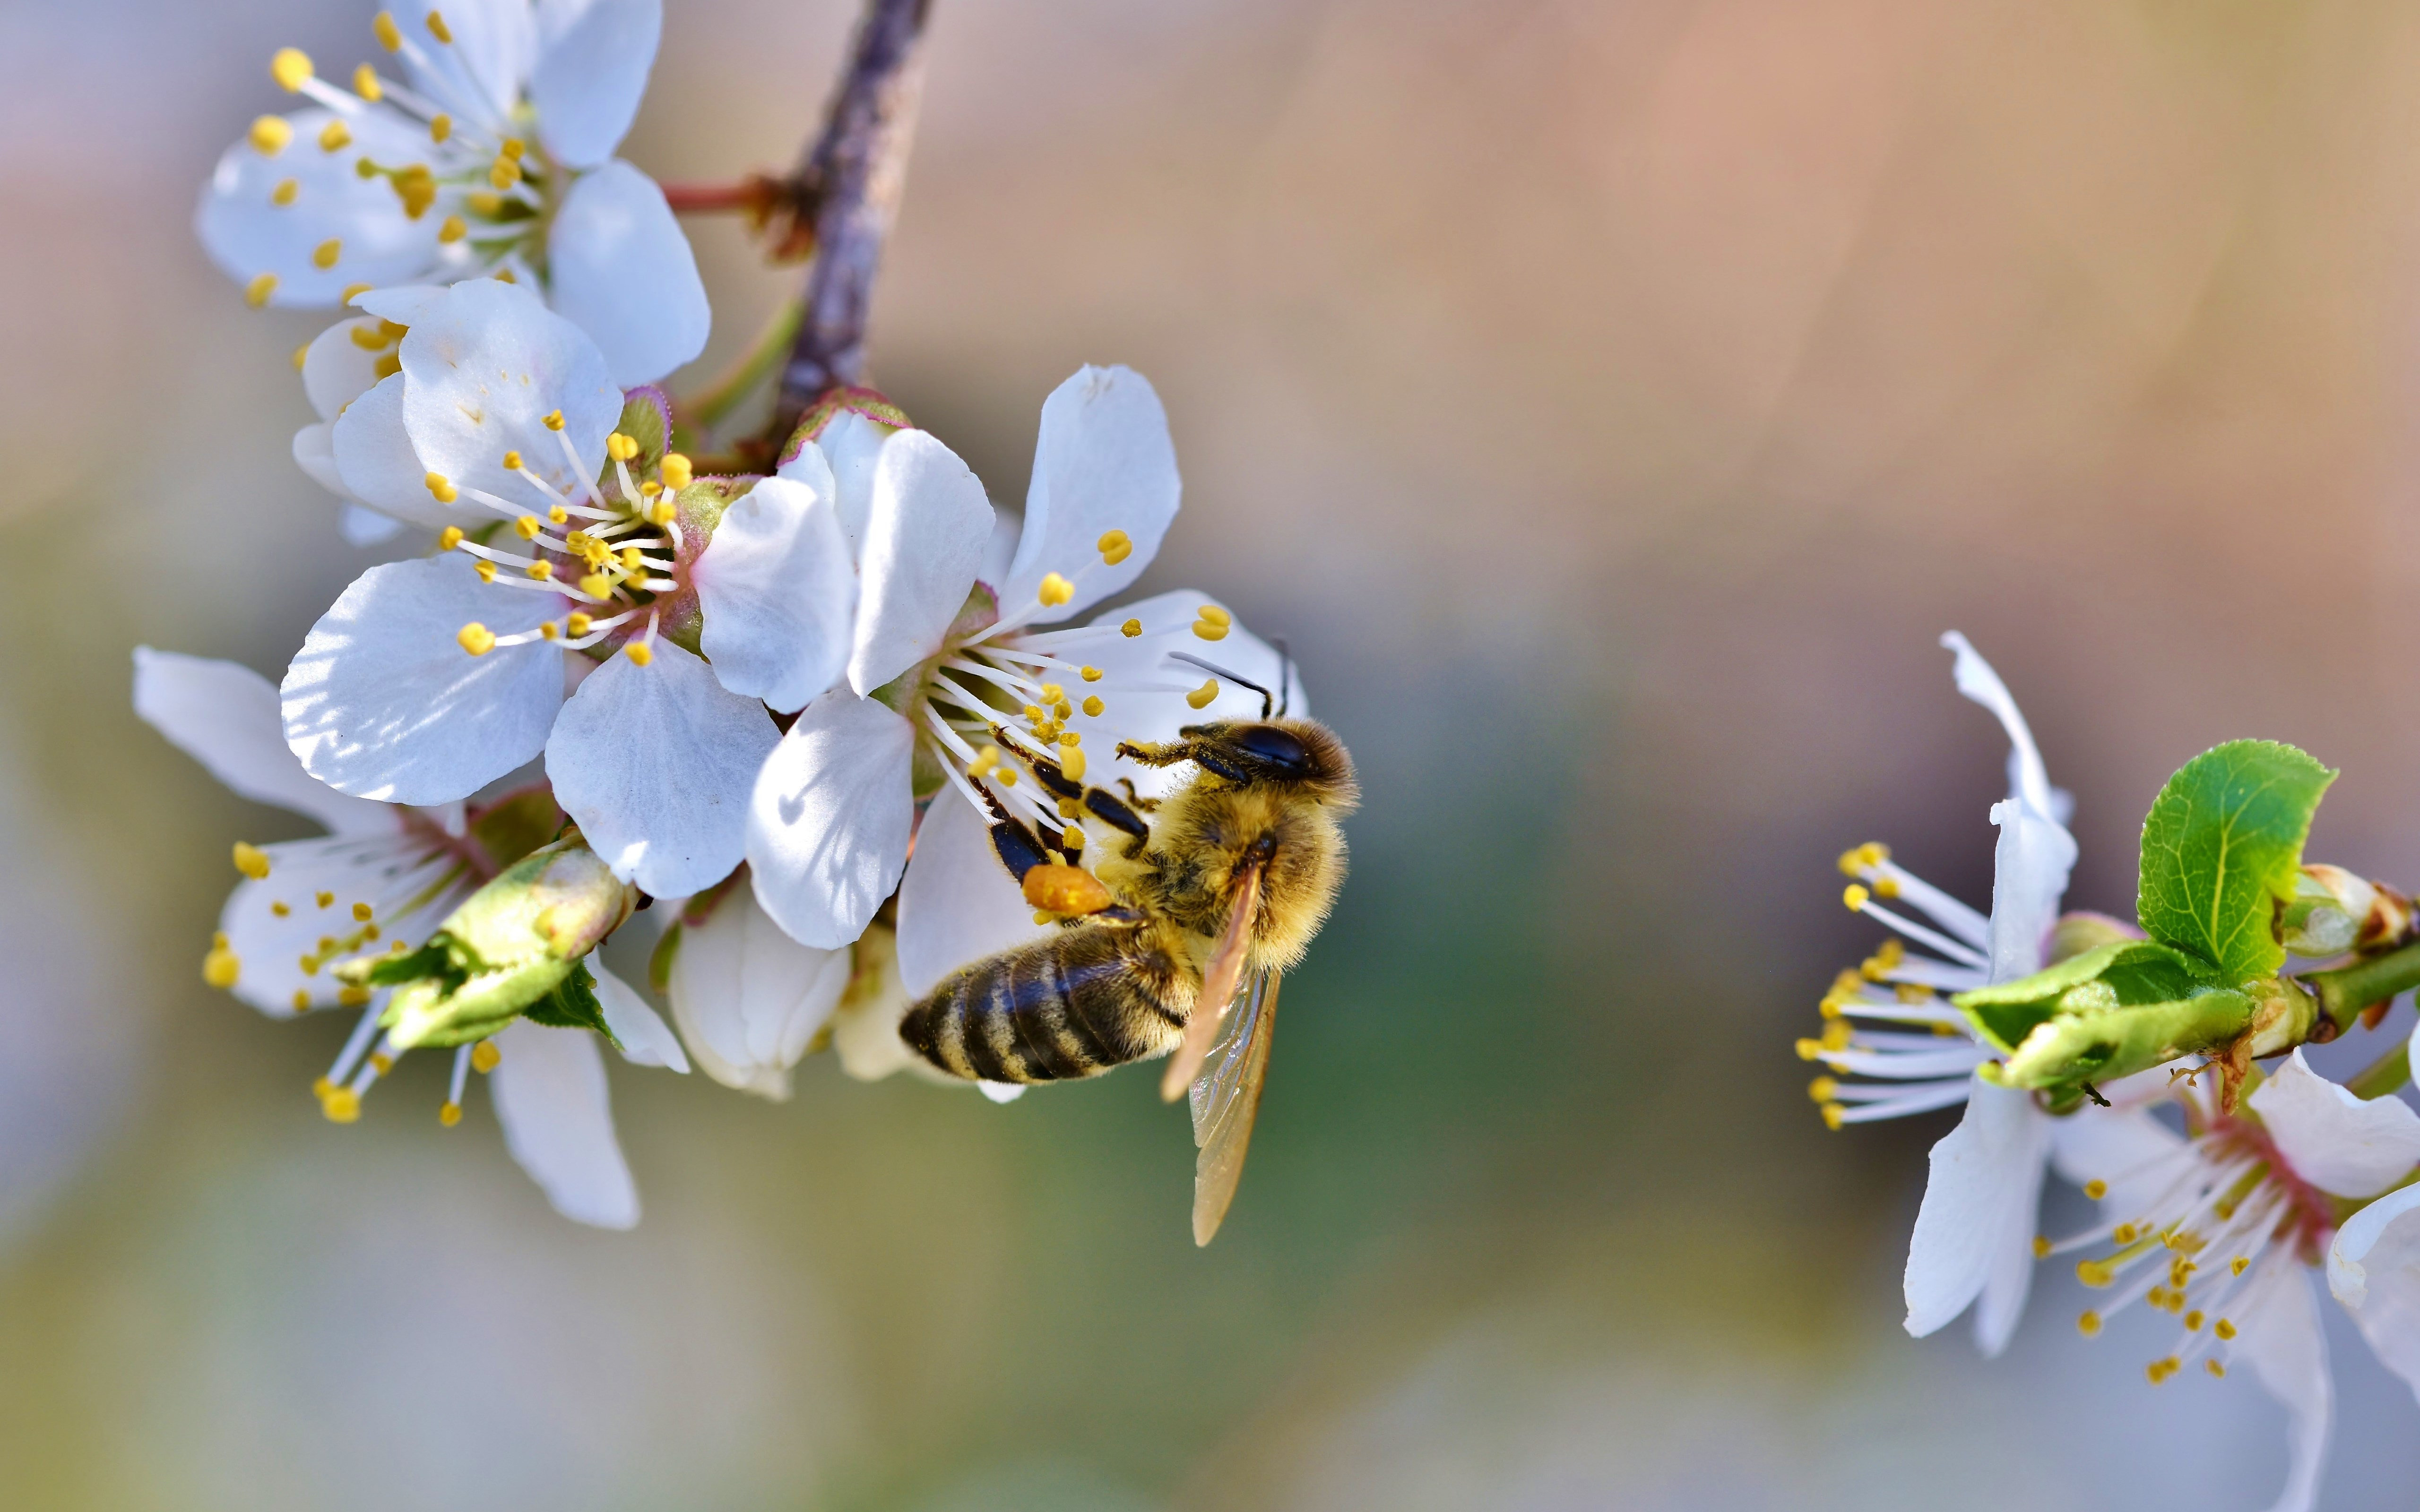 Spring, bee, blossoms, flower wallpaper 5120x3200